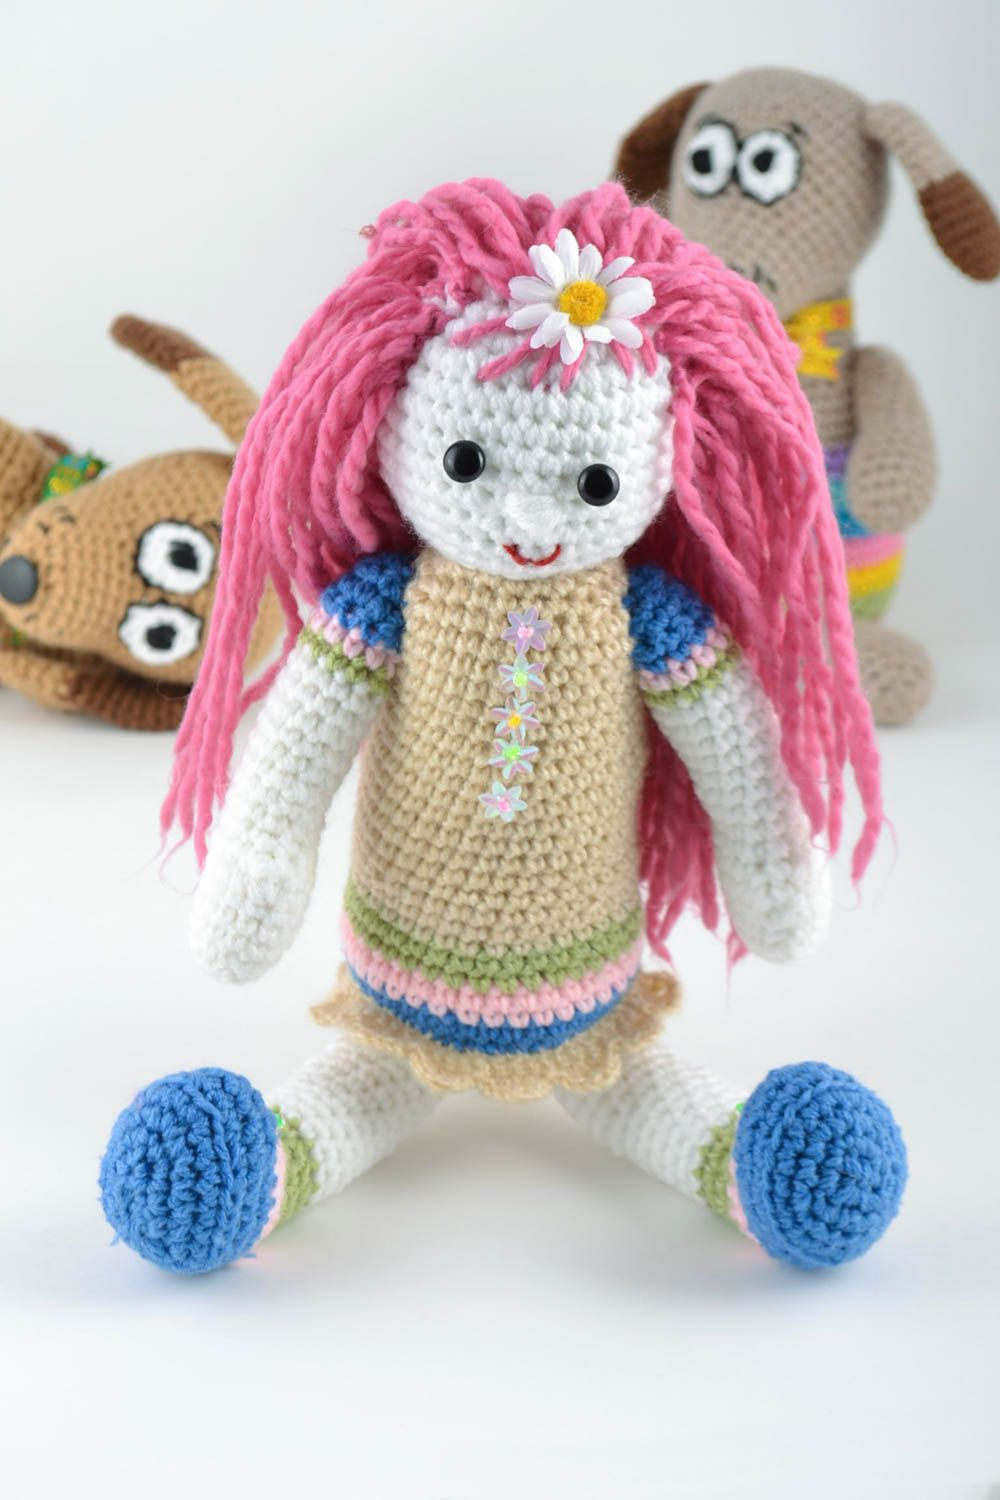 knitted toys Handmade designer soft toy crocheted of wool and semi wool girl with pink hair - MADEheart.com